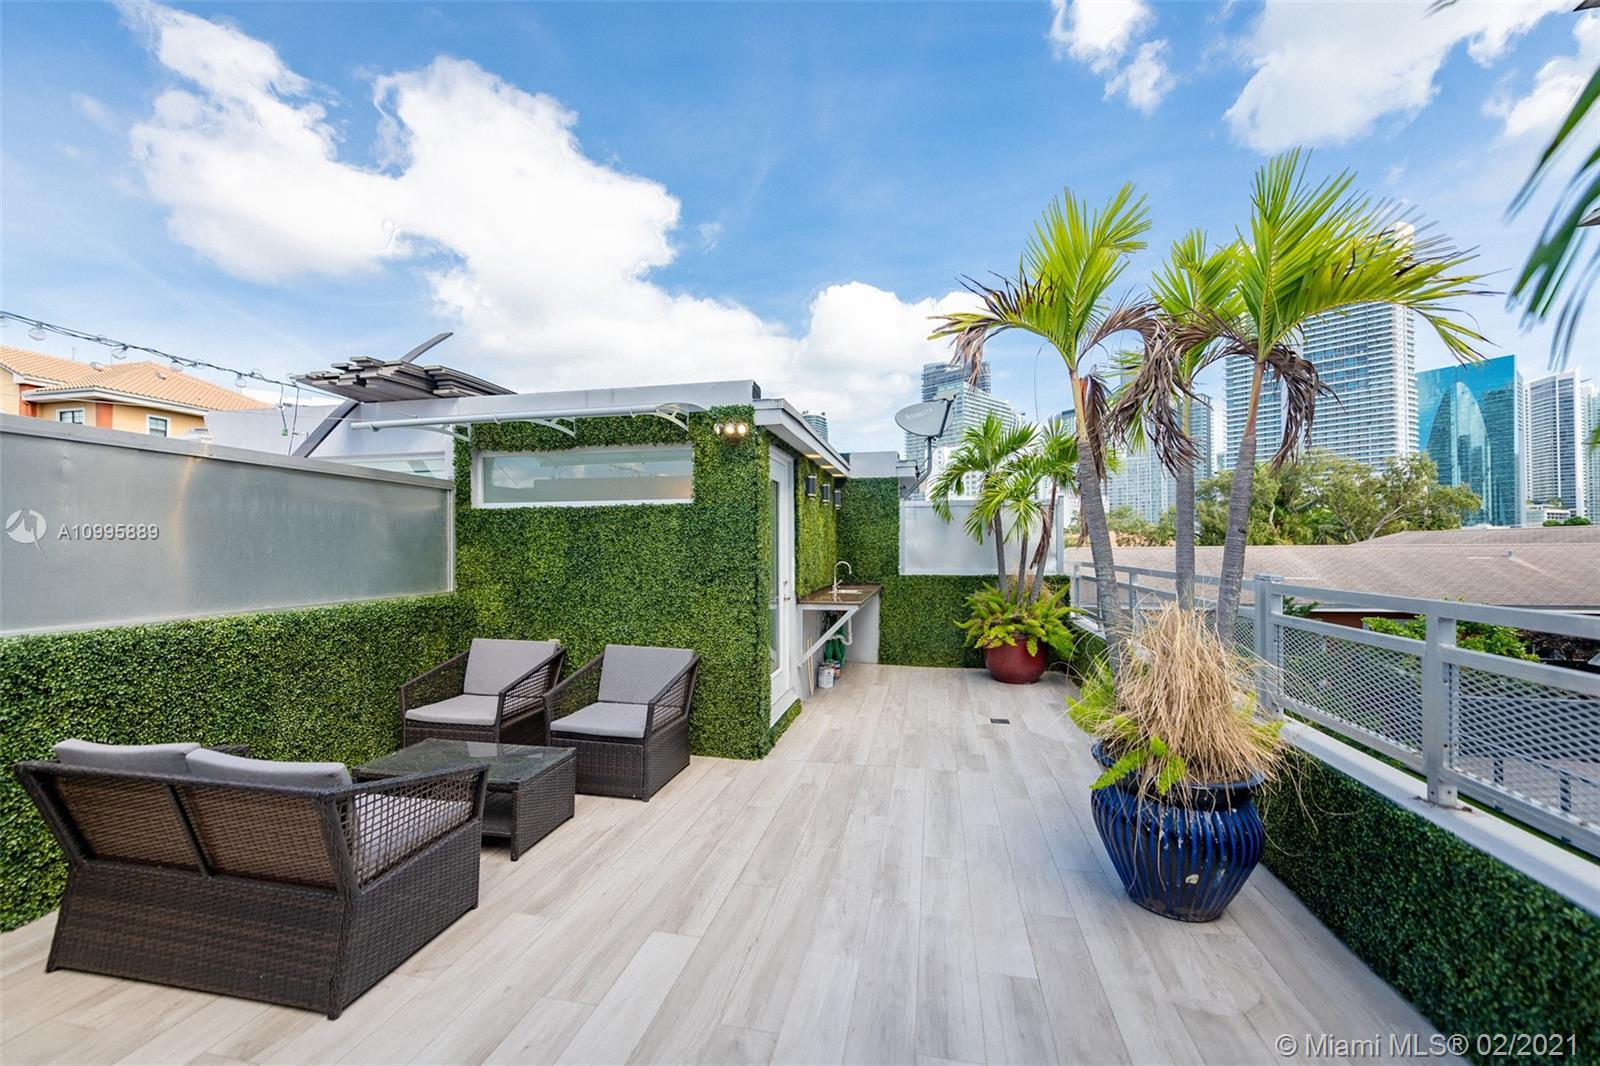 PRIVATE ROOFTOP TERRACE steps from everything Brickell has to offer. Monthly HOA fee of only $297. T